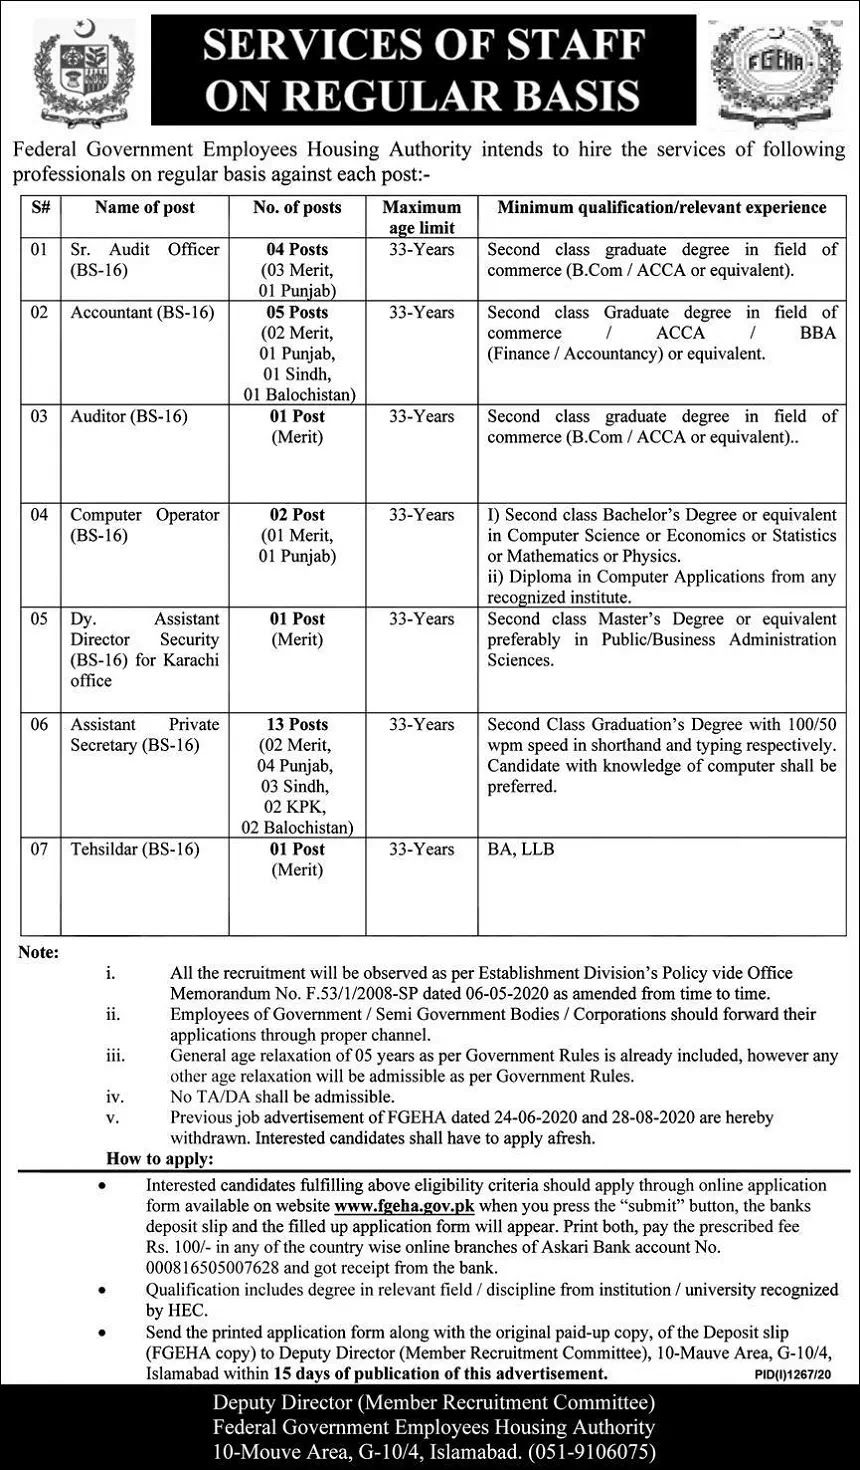 National Housing Authority Application Form